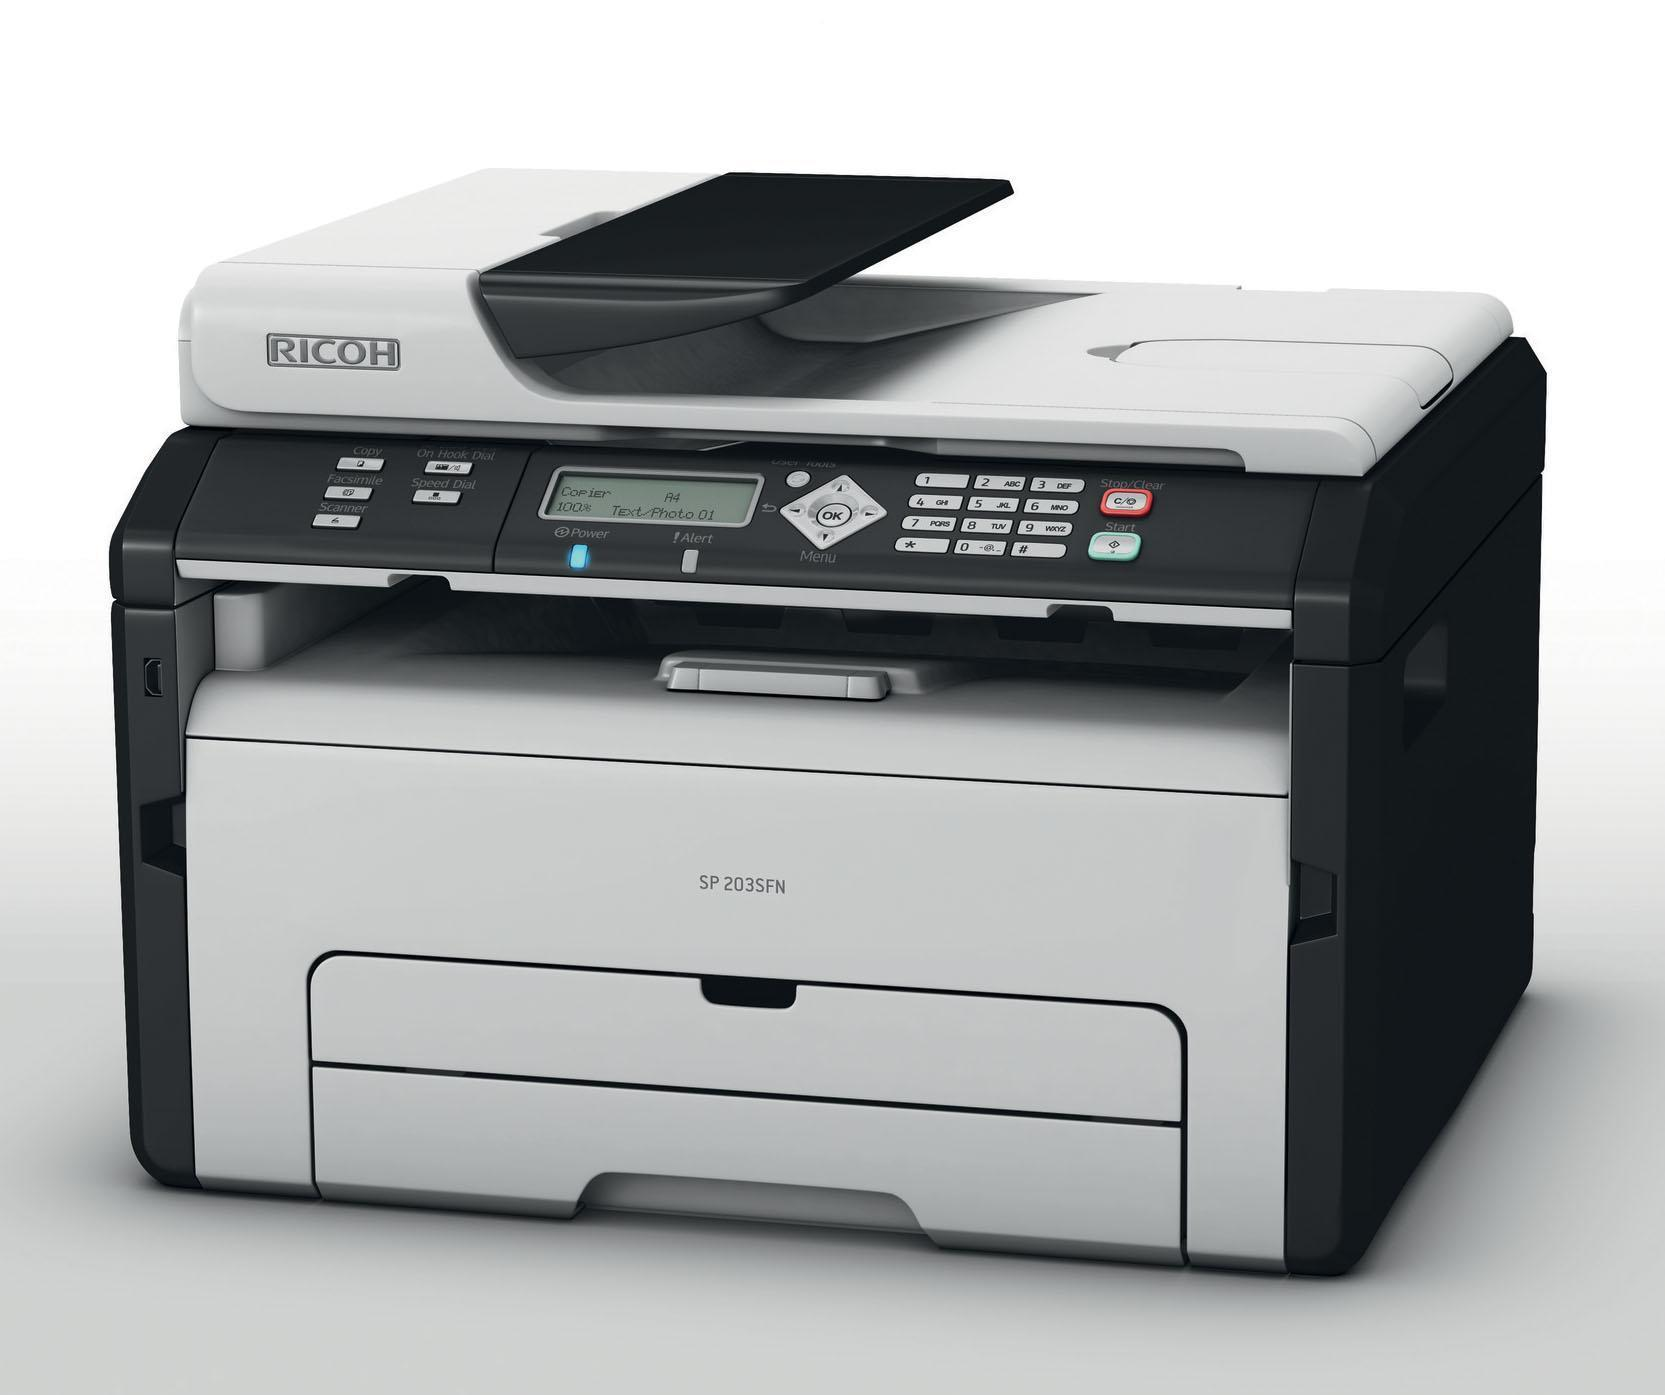 Ricoh SP204SFN All in One Mono Laser Printer with Ethernet